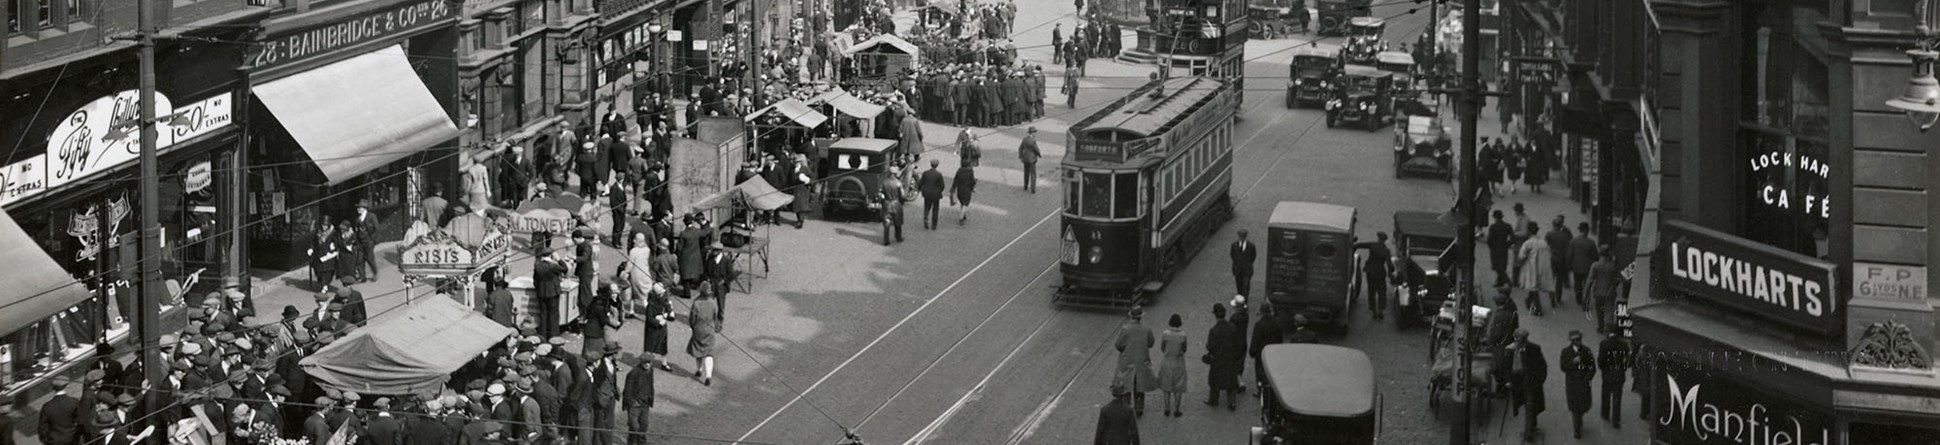 Black and white photo of a busy street scene 1925-1930.